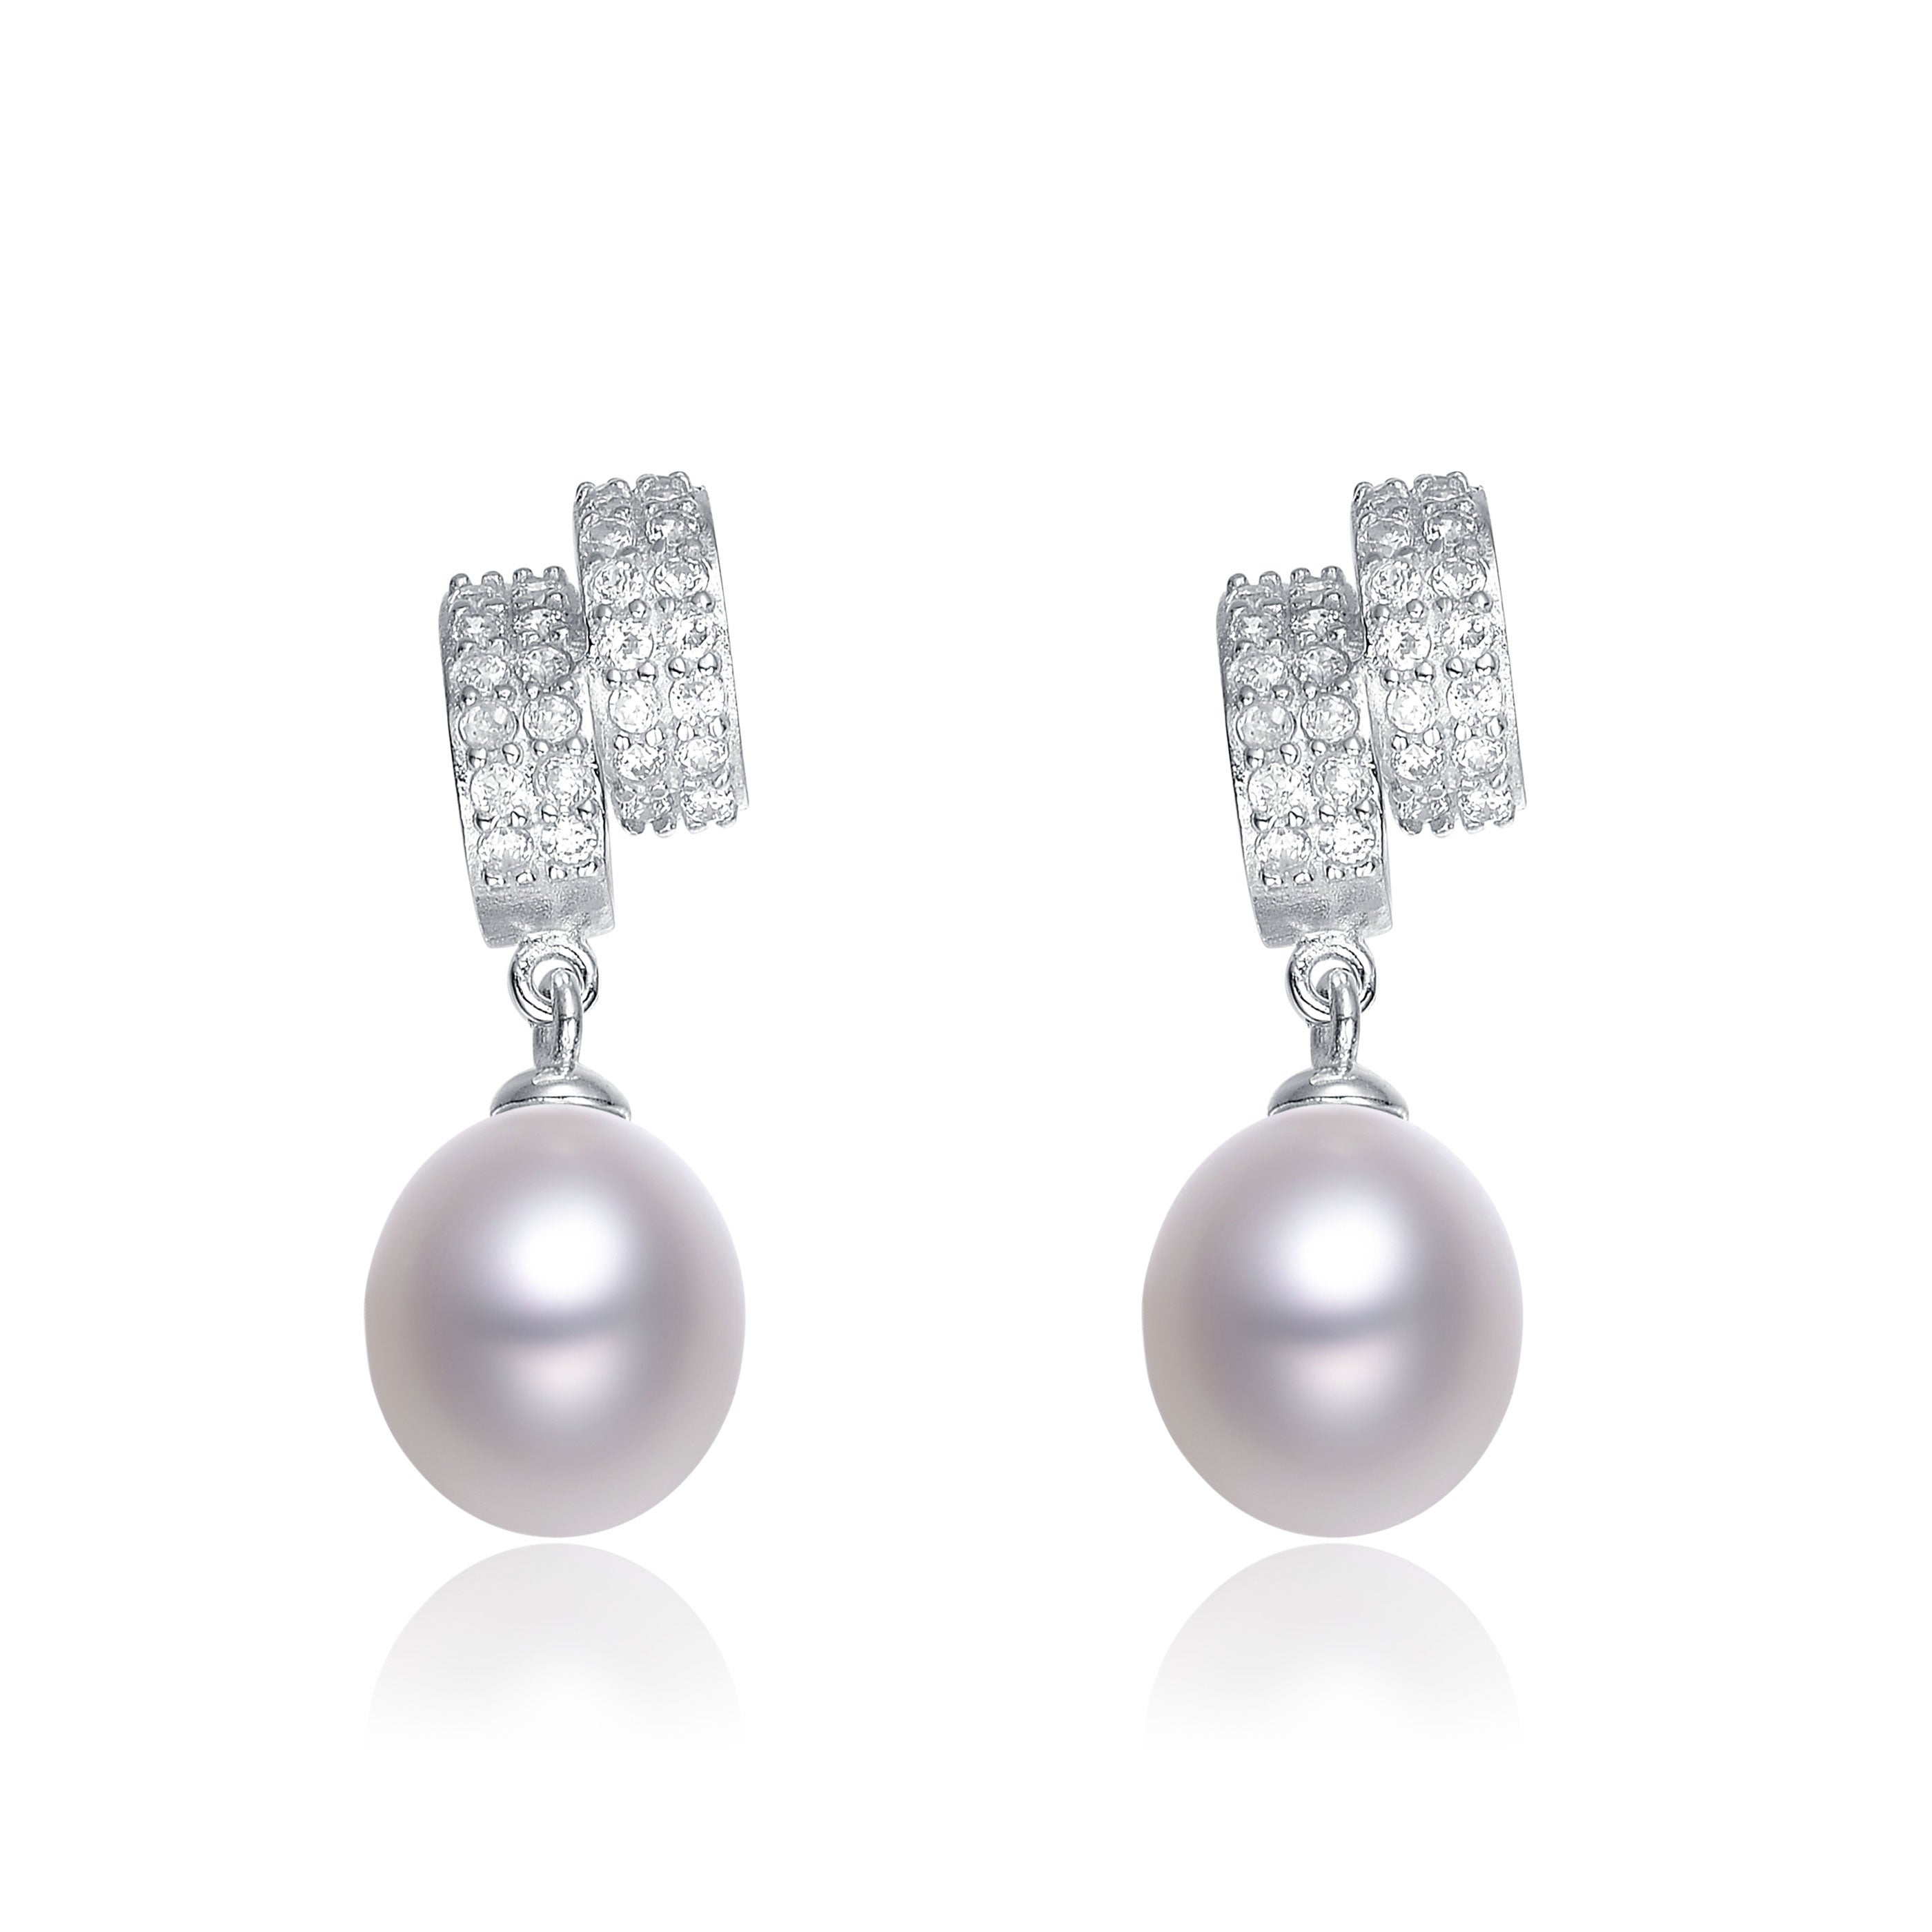 Collette Z Sterling Silver Cubic Zirconia White Freshwater Pearl Dangling Earrings (7-10 mm)